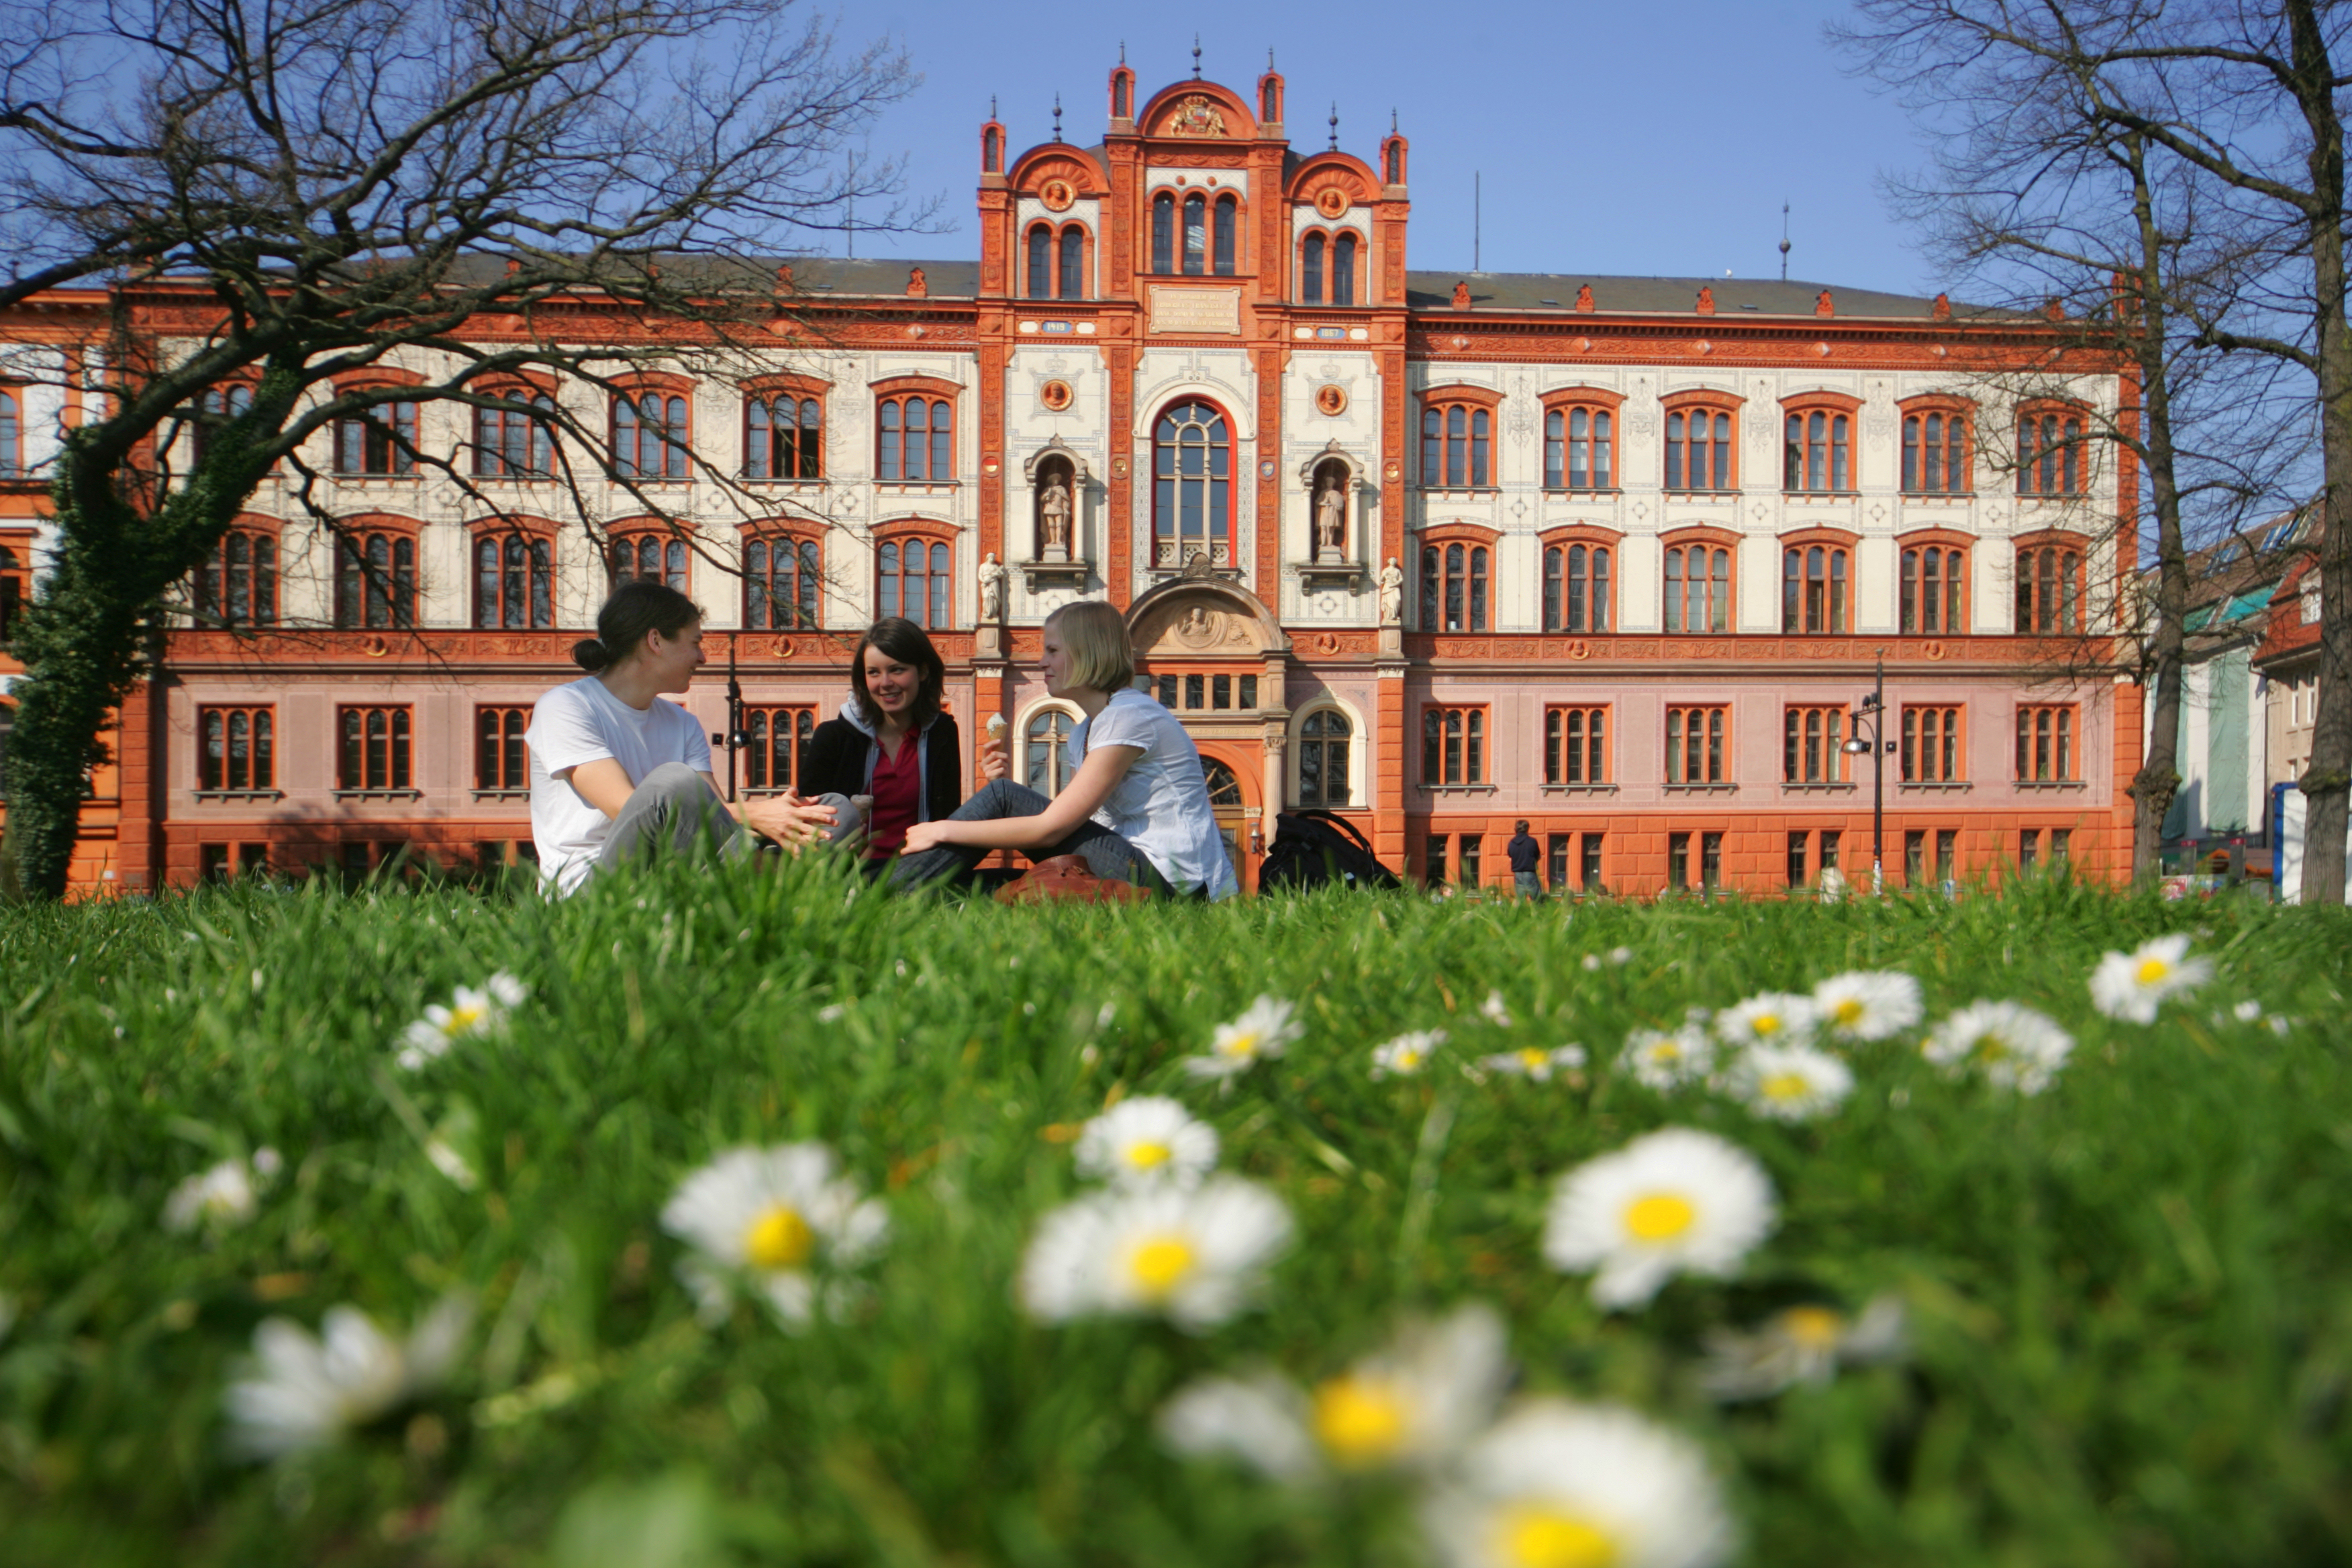 Most beautiful universities in Europe - University of Rostock